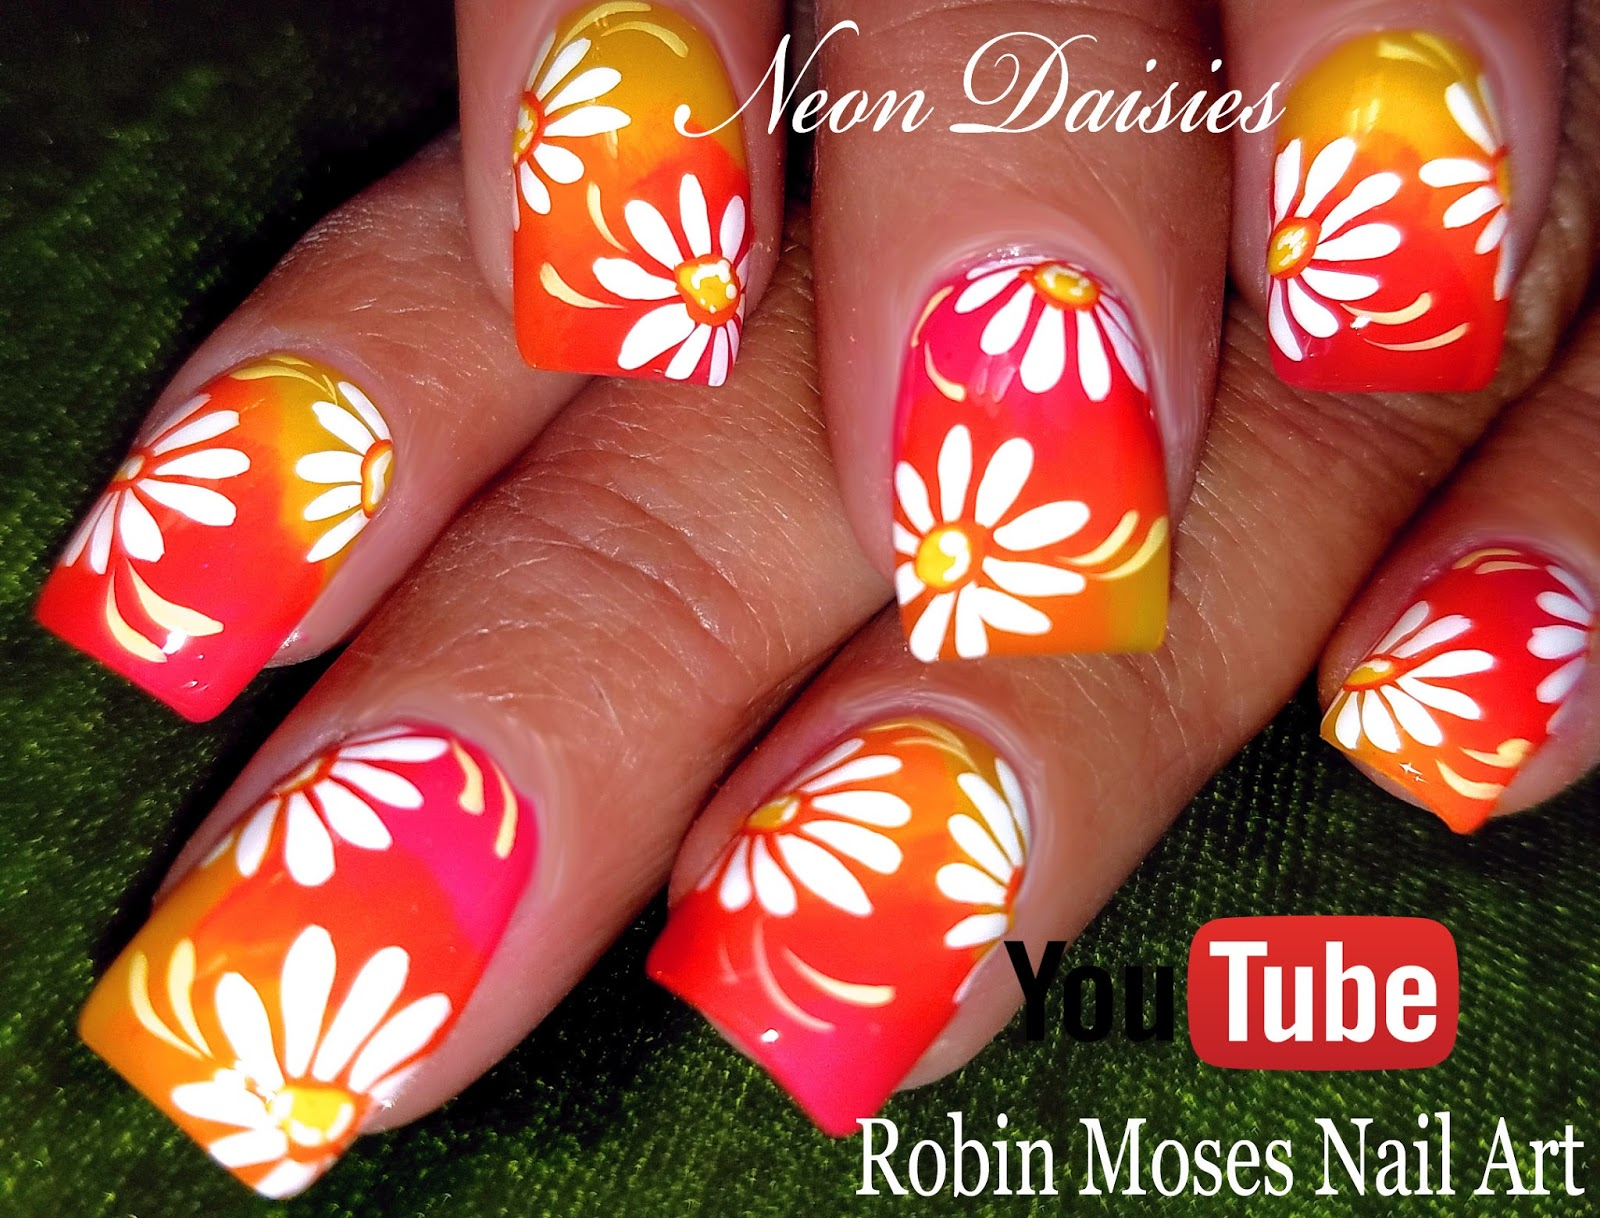 Robin moses nail art diy hand painted neon flower nail art design please shout out like comment and subscribe to those who inspire you and keep our nail art community fun and full of new ideas prinsesfo Image collections